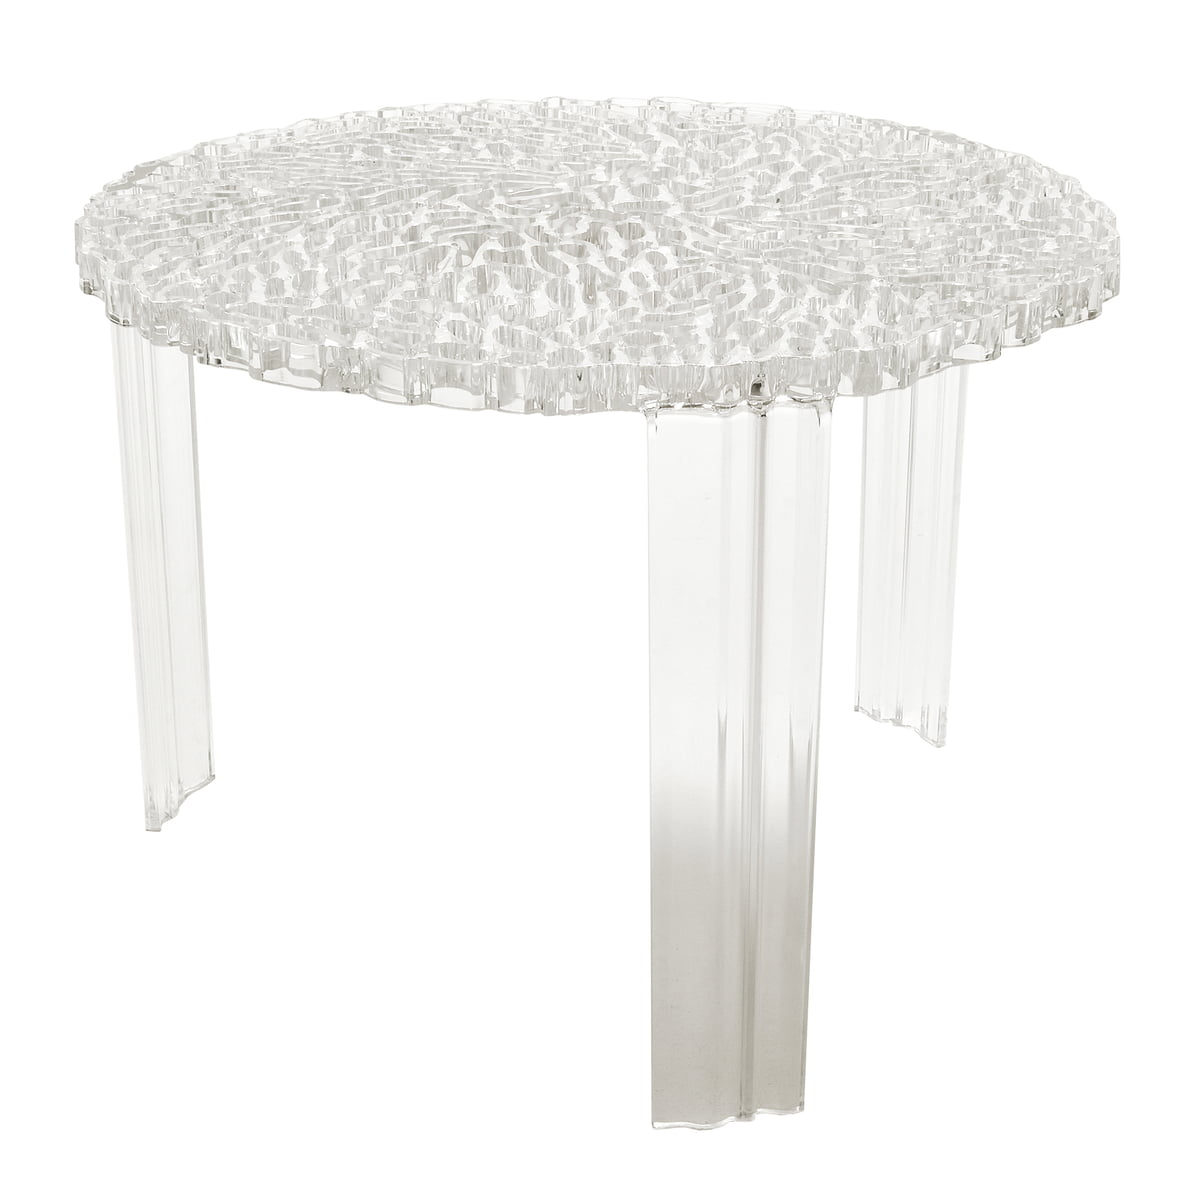 T table kartell shop for Table 70 cm hauteur